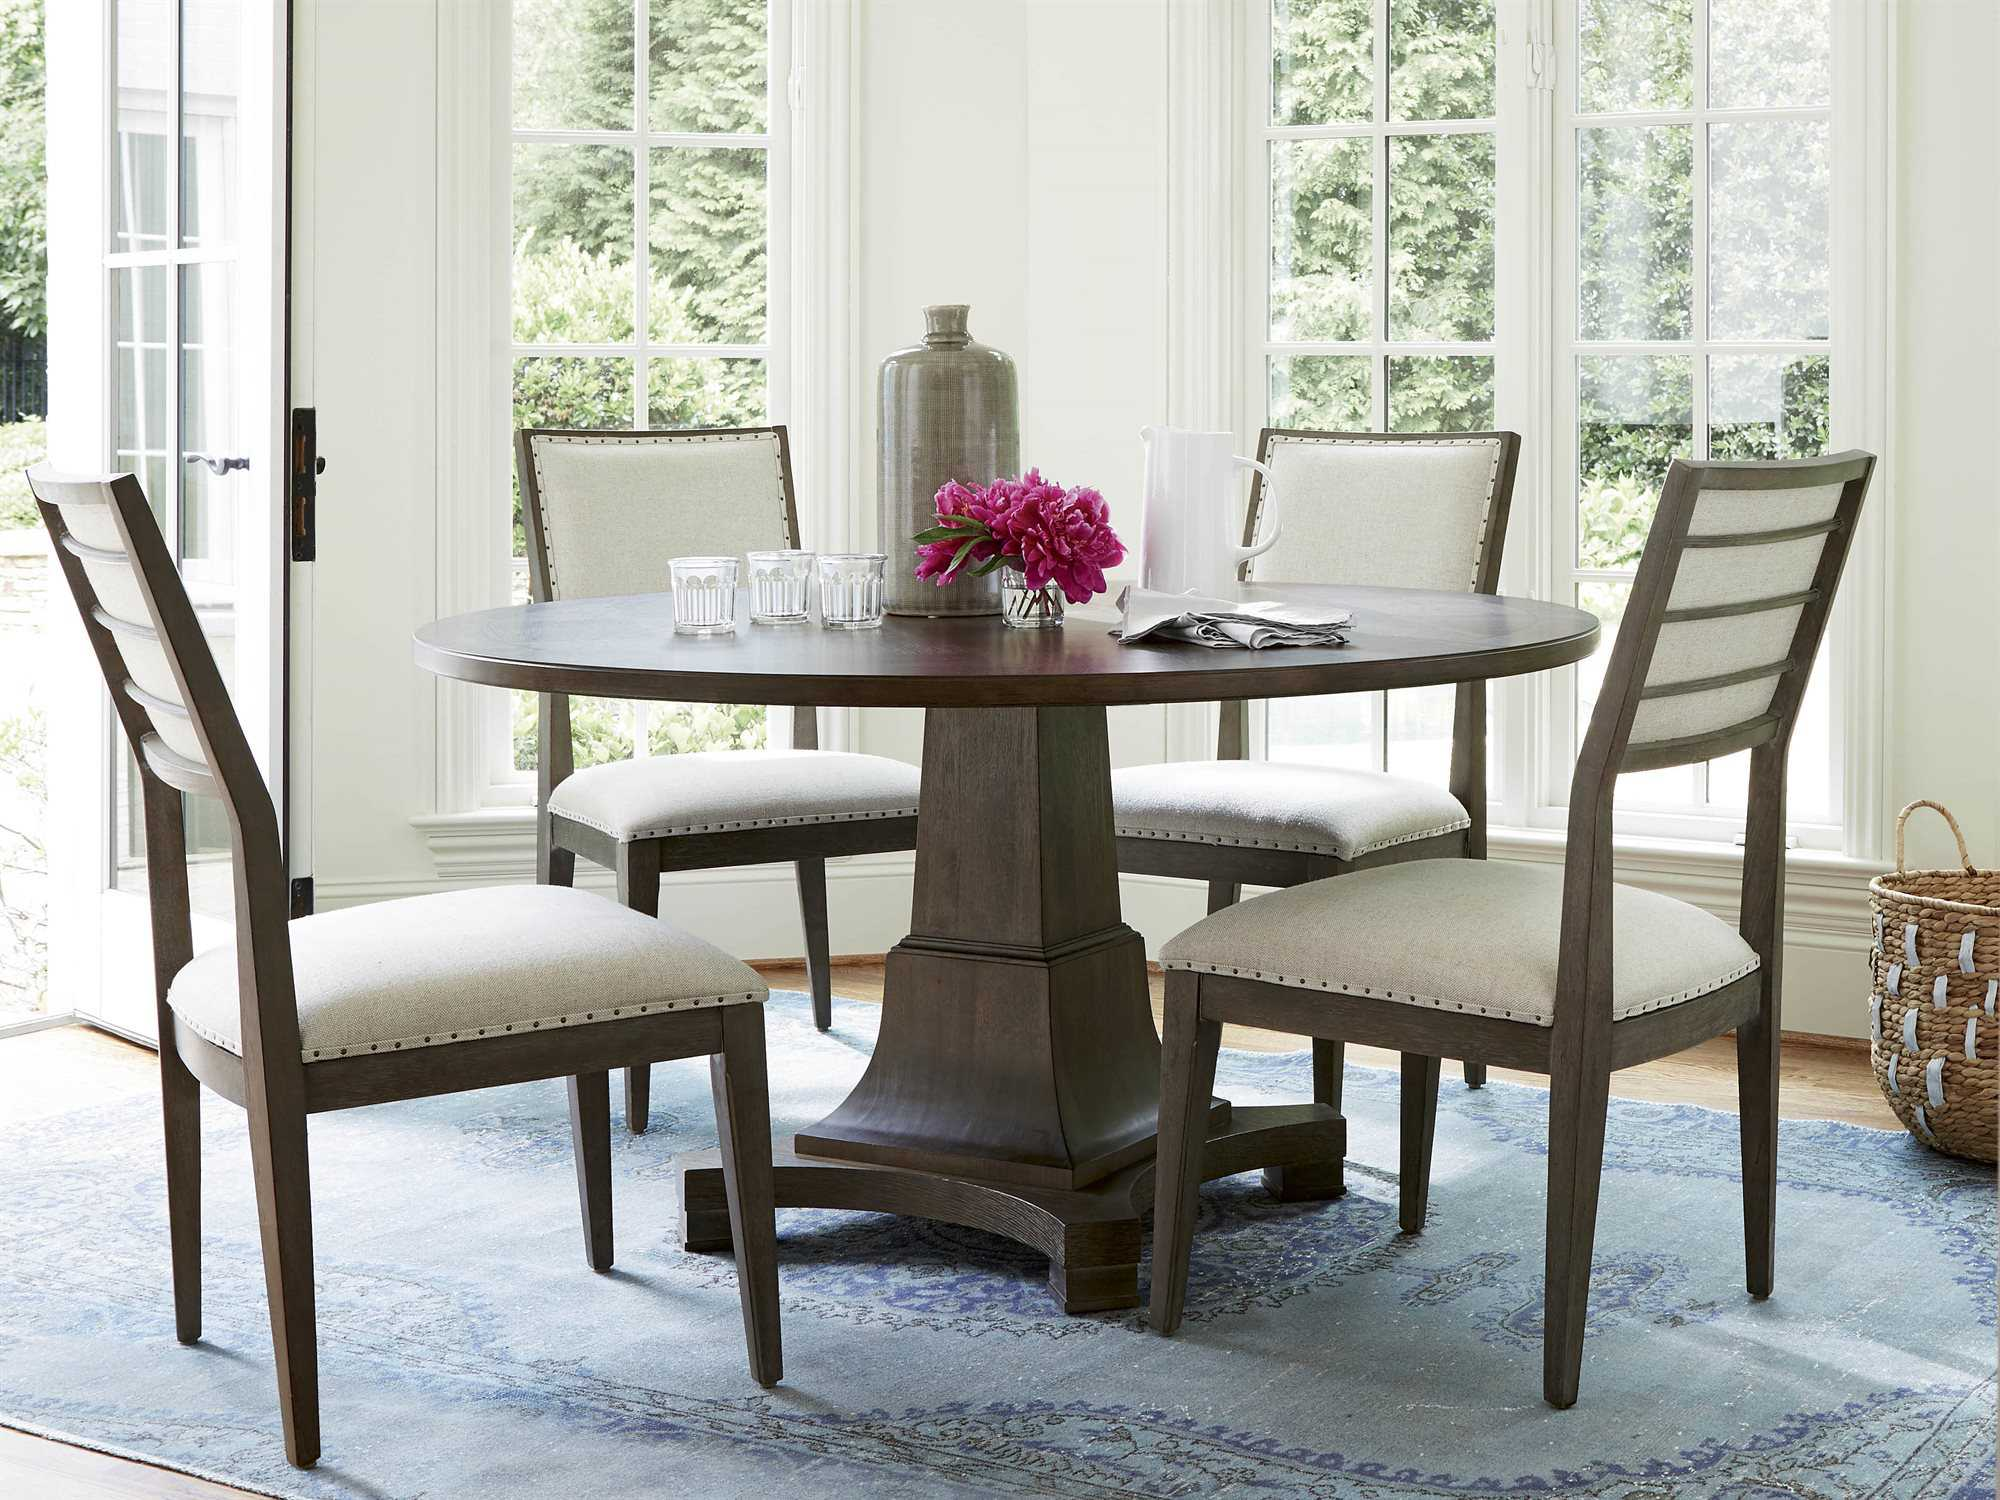 universal furniture playlist 58 39 39 round brown eyed girl dining table uf507657. Black Bedroom Furniture Sets. Home Design Ideas